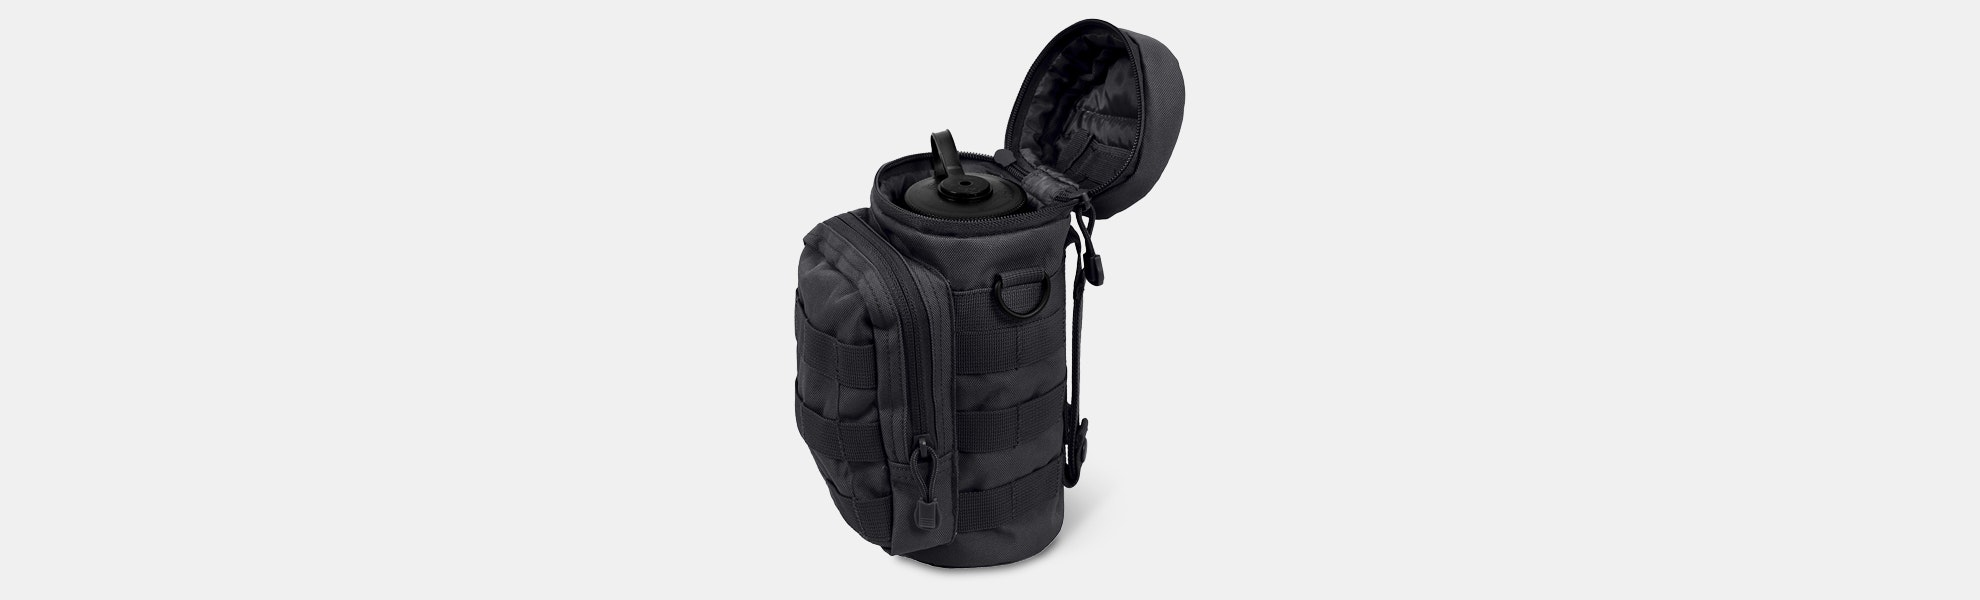 Rothco Water Bottle Survival Kit w/ MOLLE Pouch